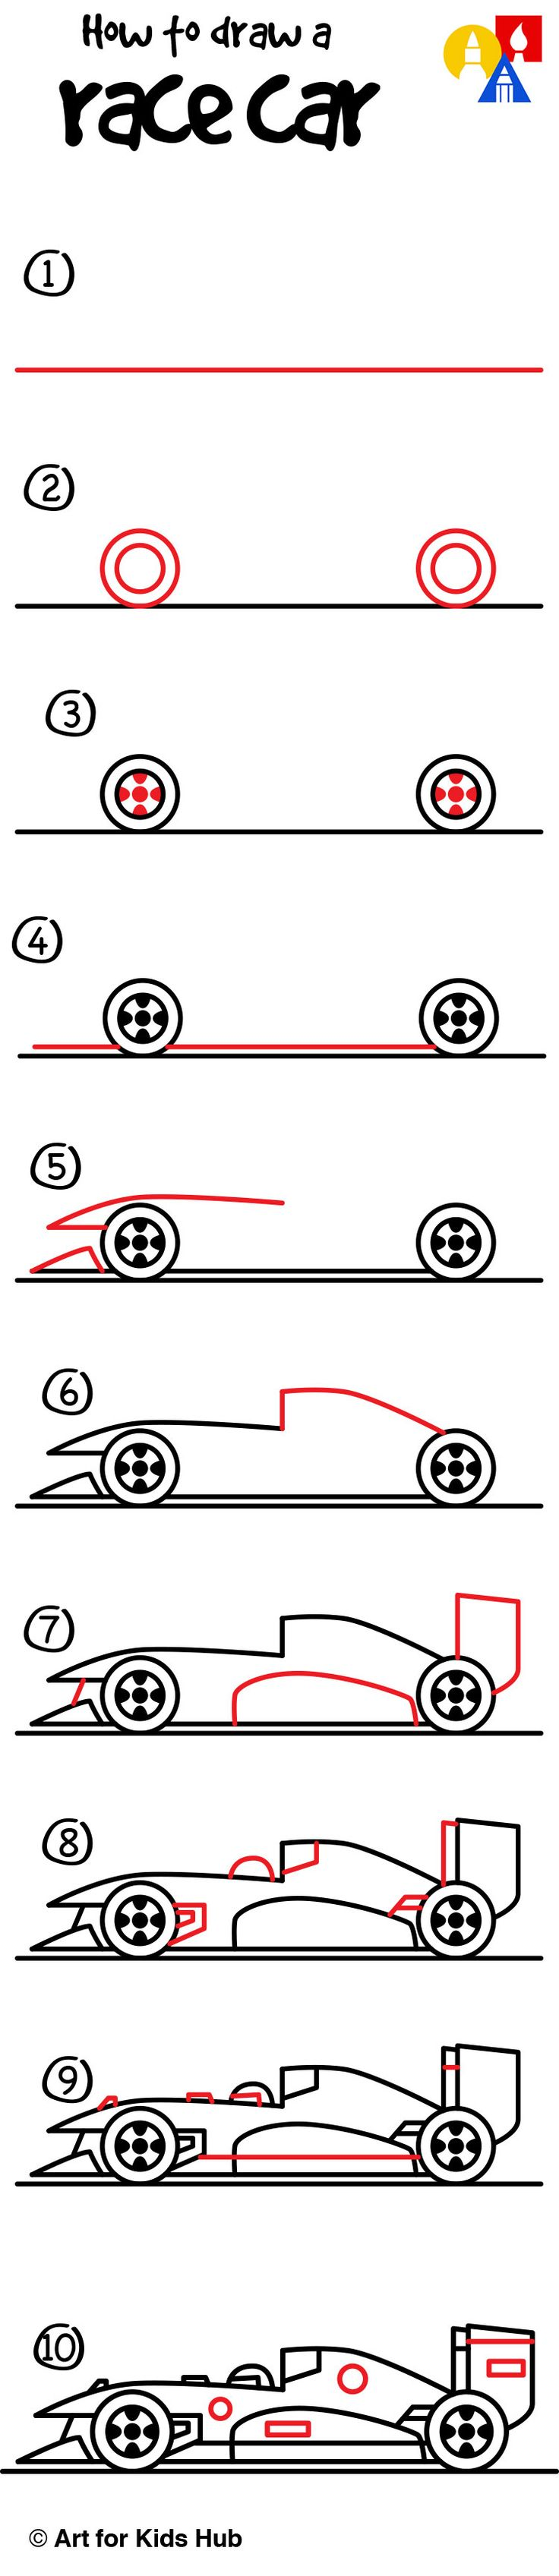 1000+ images about RACE CAR on Pinterest   Coloring pages ...